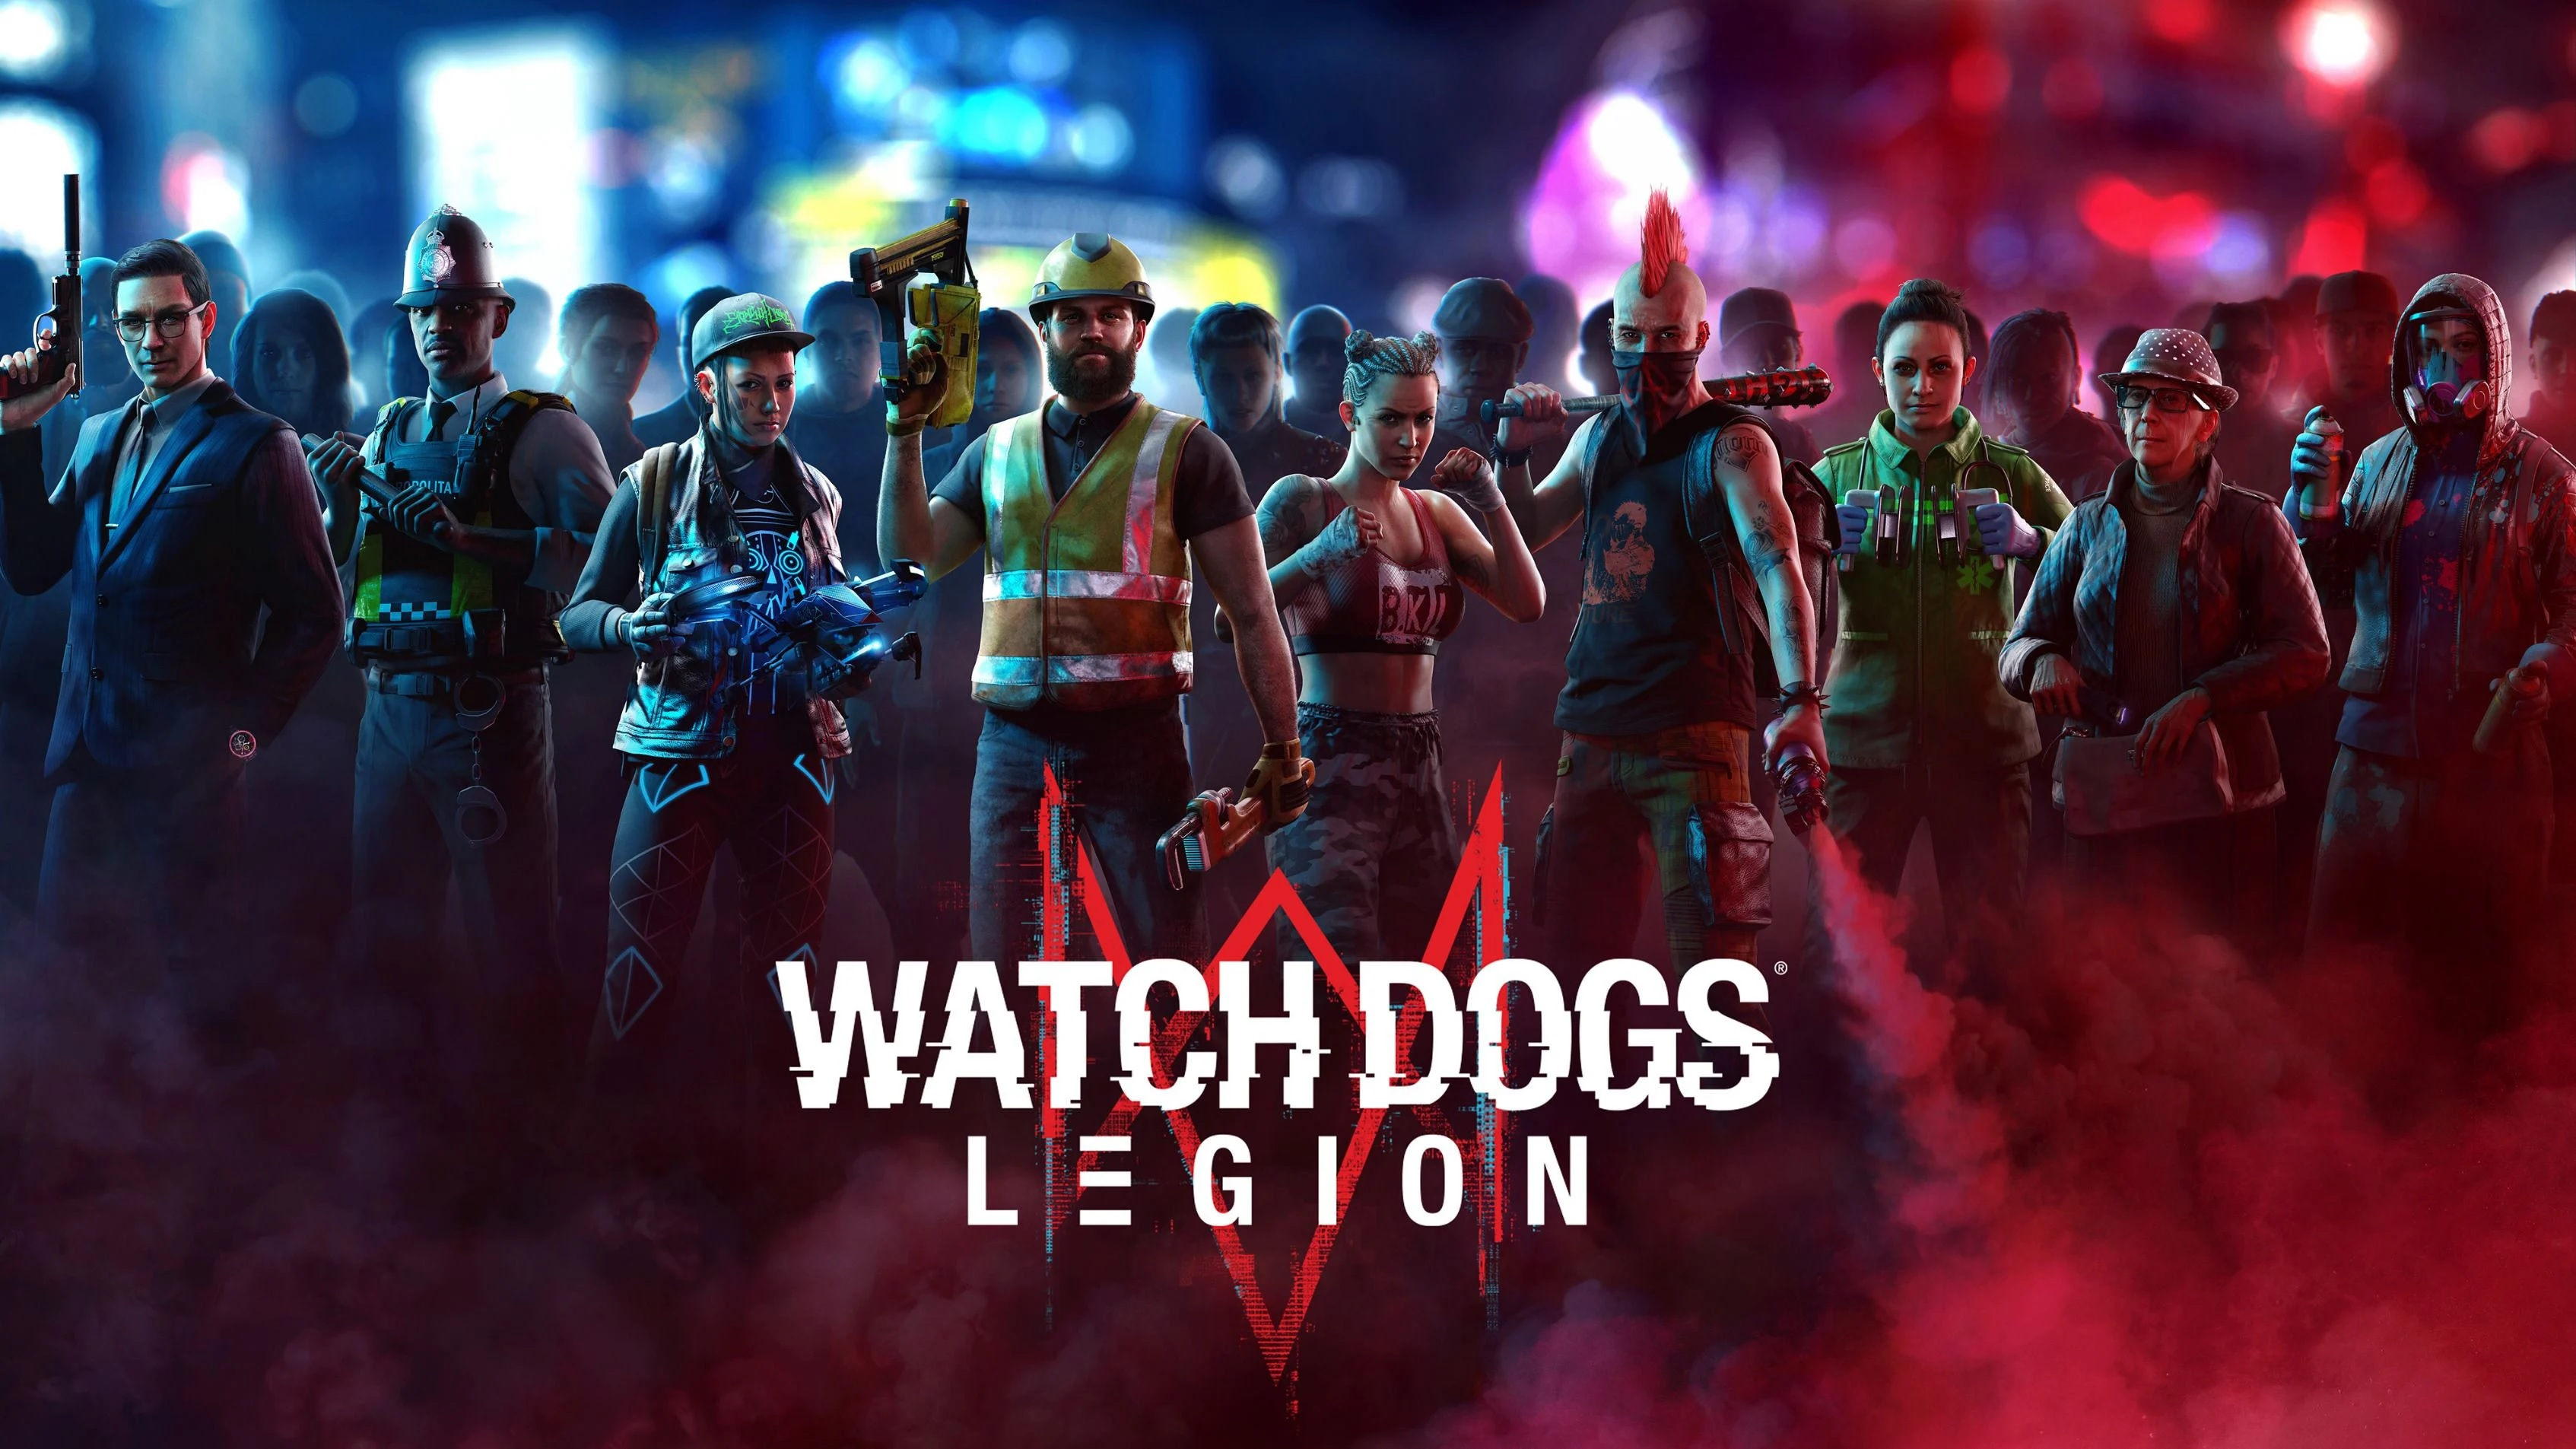 Poznali¶my wymagania sprzêtowe Watch Dogs Legion